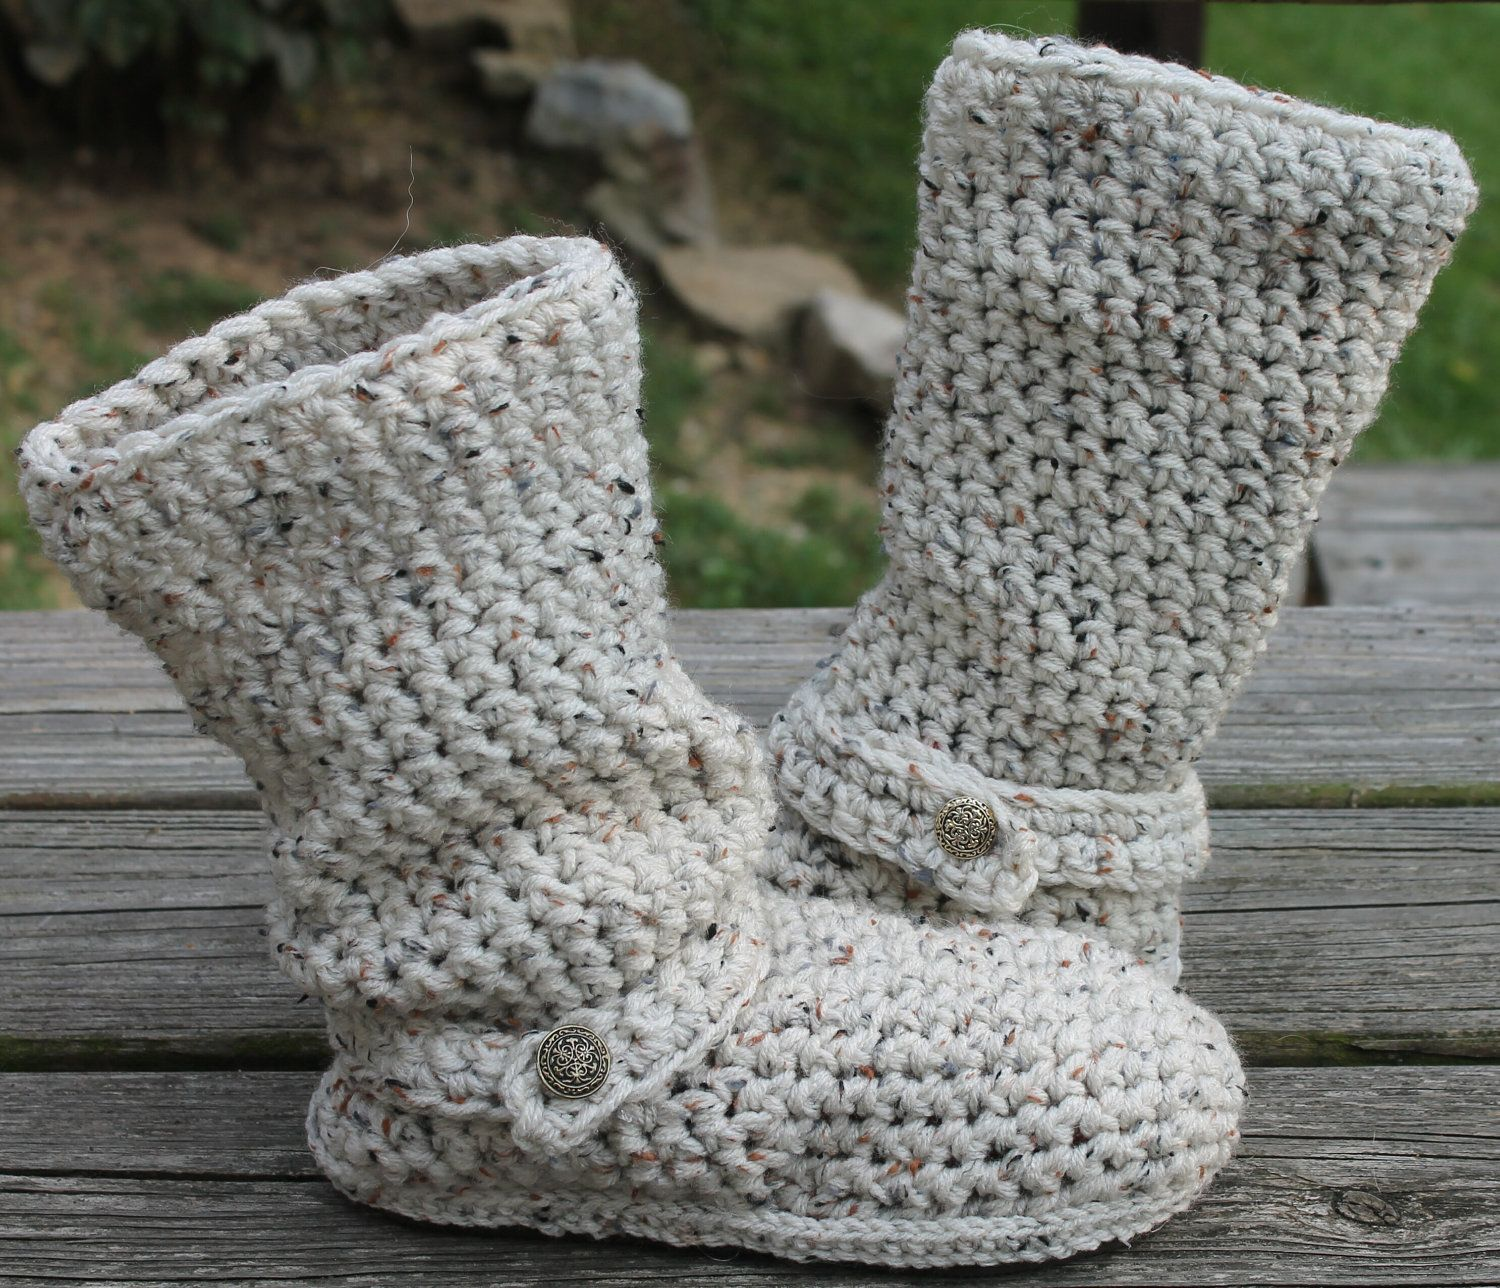 Crochet boots pattern oatmeal slouchy mid calf boots items similar to crochet boots pattern oatmeal slouchy mid calf boots for the street boho style on etsy bankloansurffo Image collections